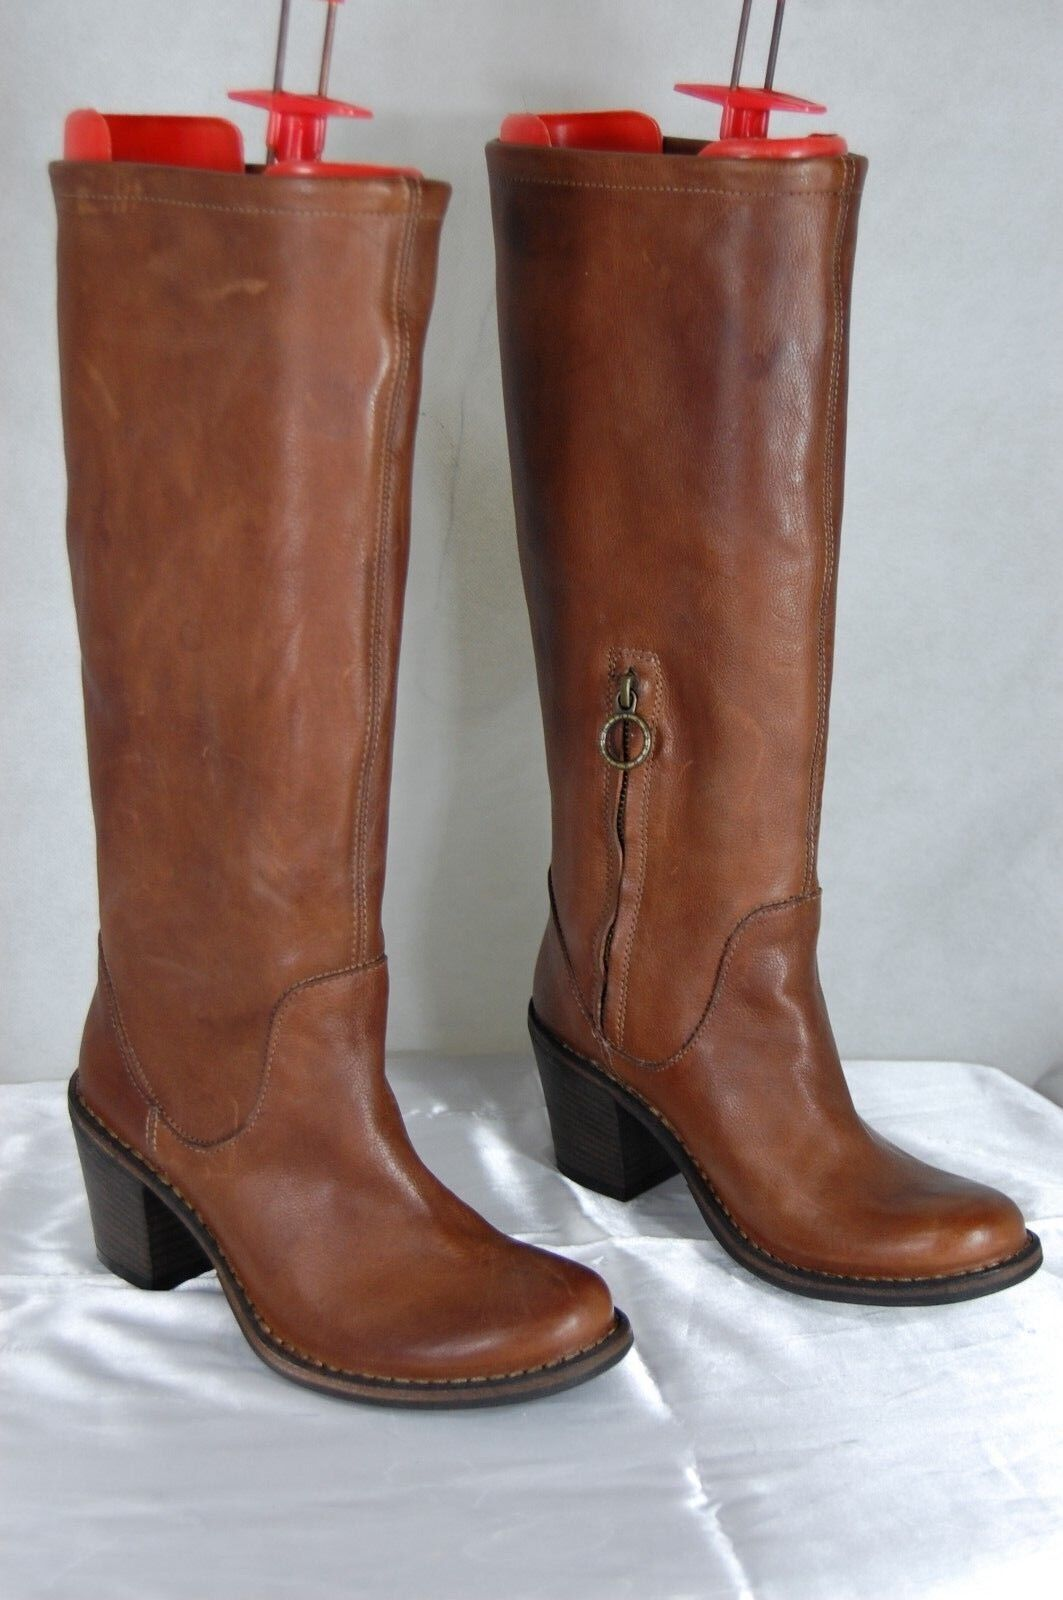 FIORENTINI+ BAKER WOMEN BIKER RIDING LEATHER TALL BOOTS US 6 MADE IN ITALY